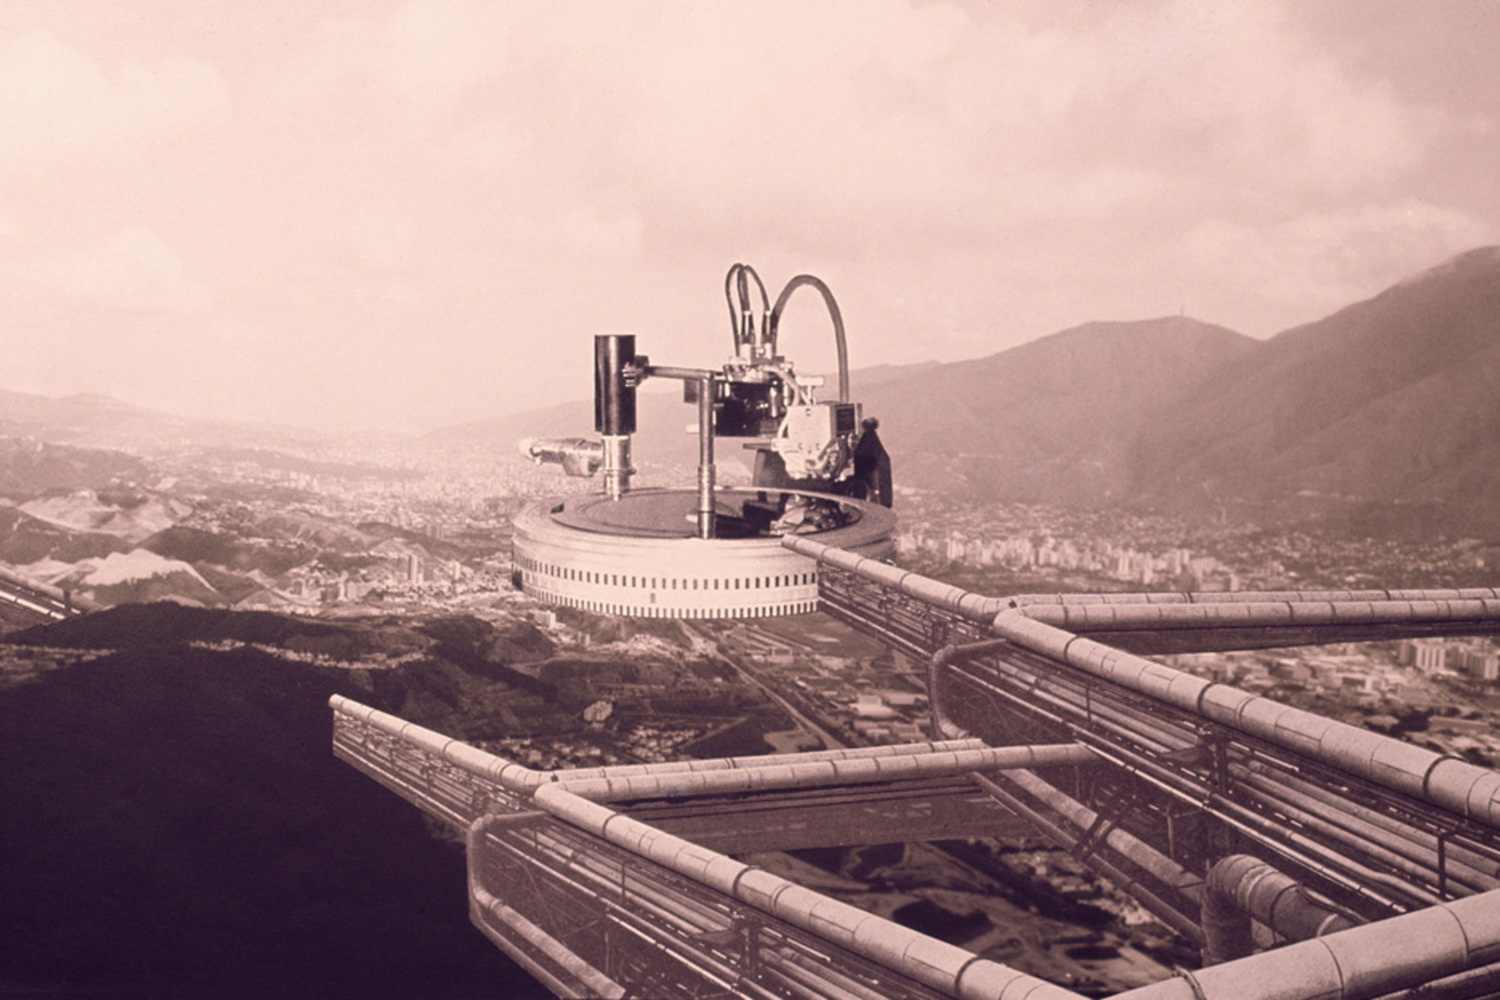 "Jorge Rigamonti. Caracas Nodo de Transferencia (Caracas Transfer Node 2). 1970. Photocollage. 9 1/4 x 15"" (23.5 x 38.1cm). The Museum of Modern Art, New York. Gift of the architect"